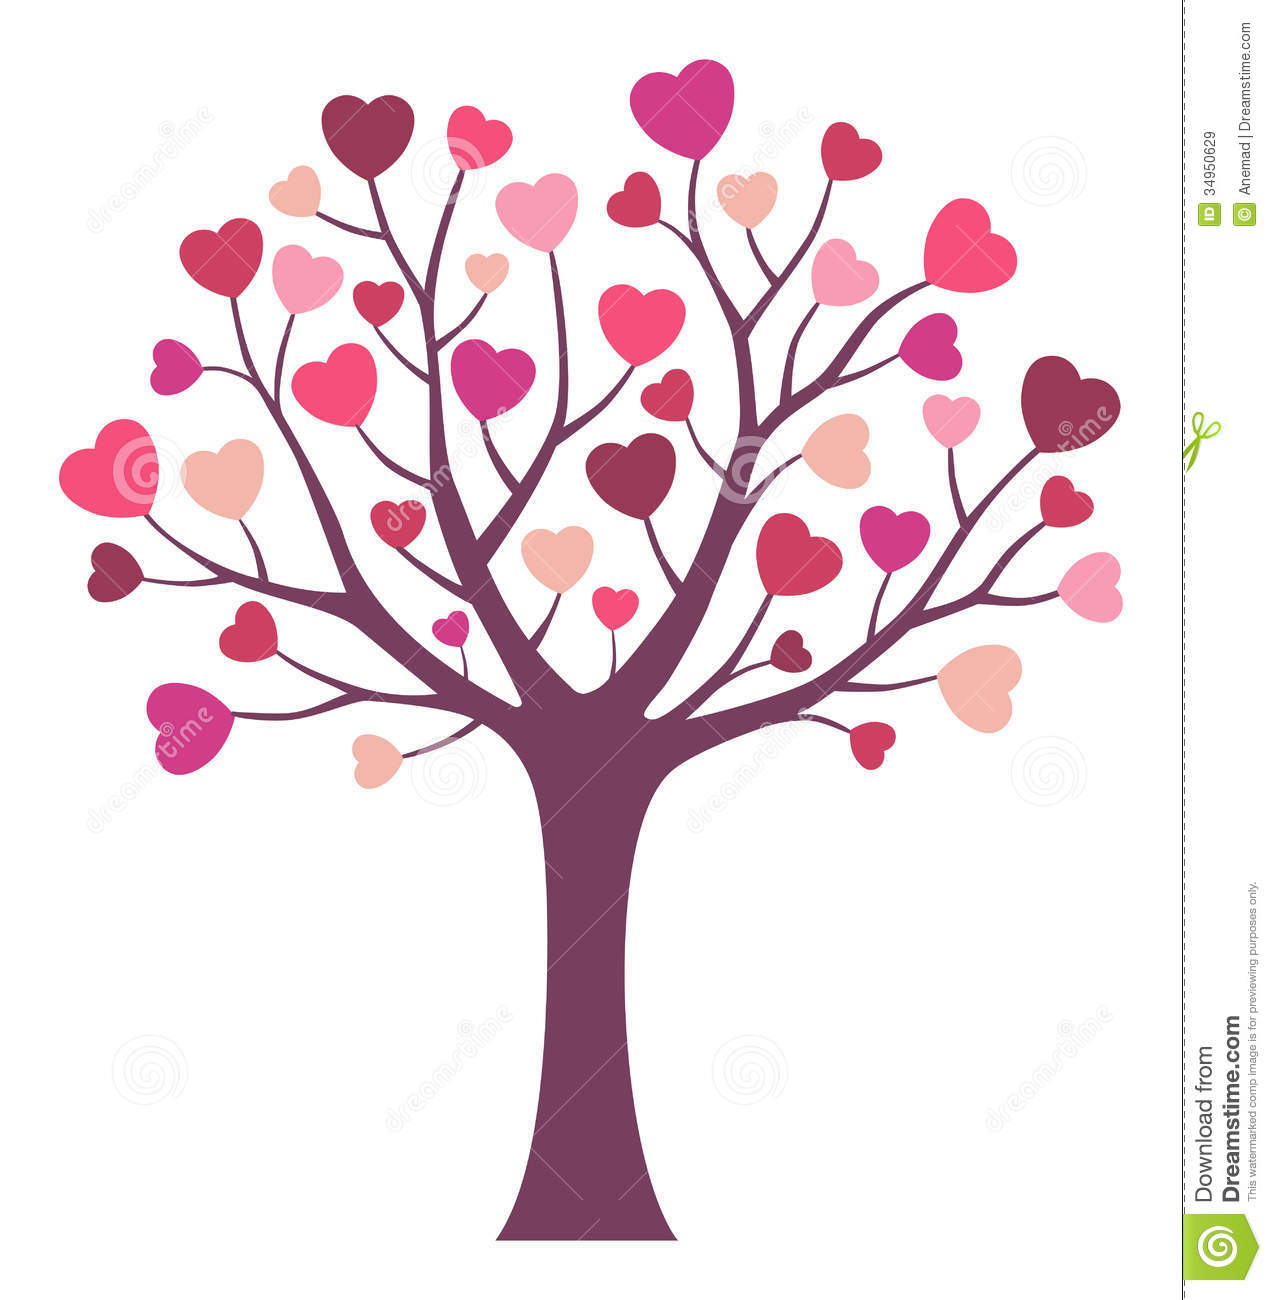 Love tree royalty free stock images image 34950629 The designlover